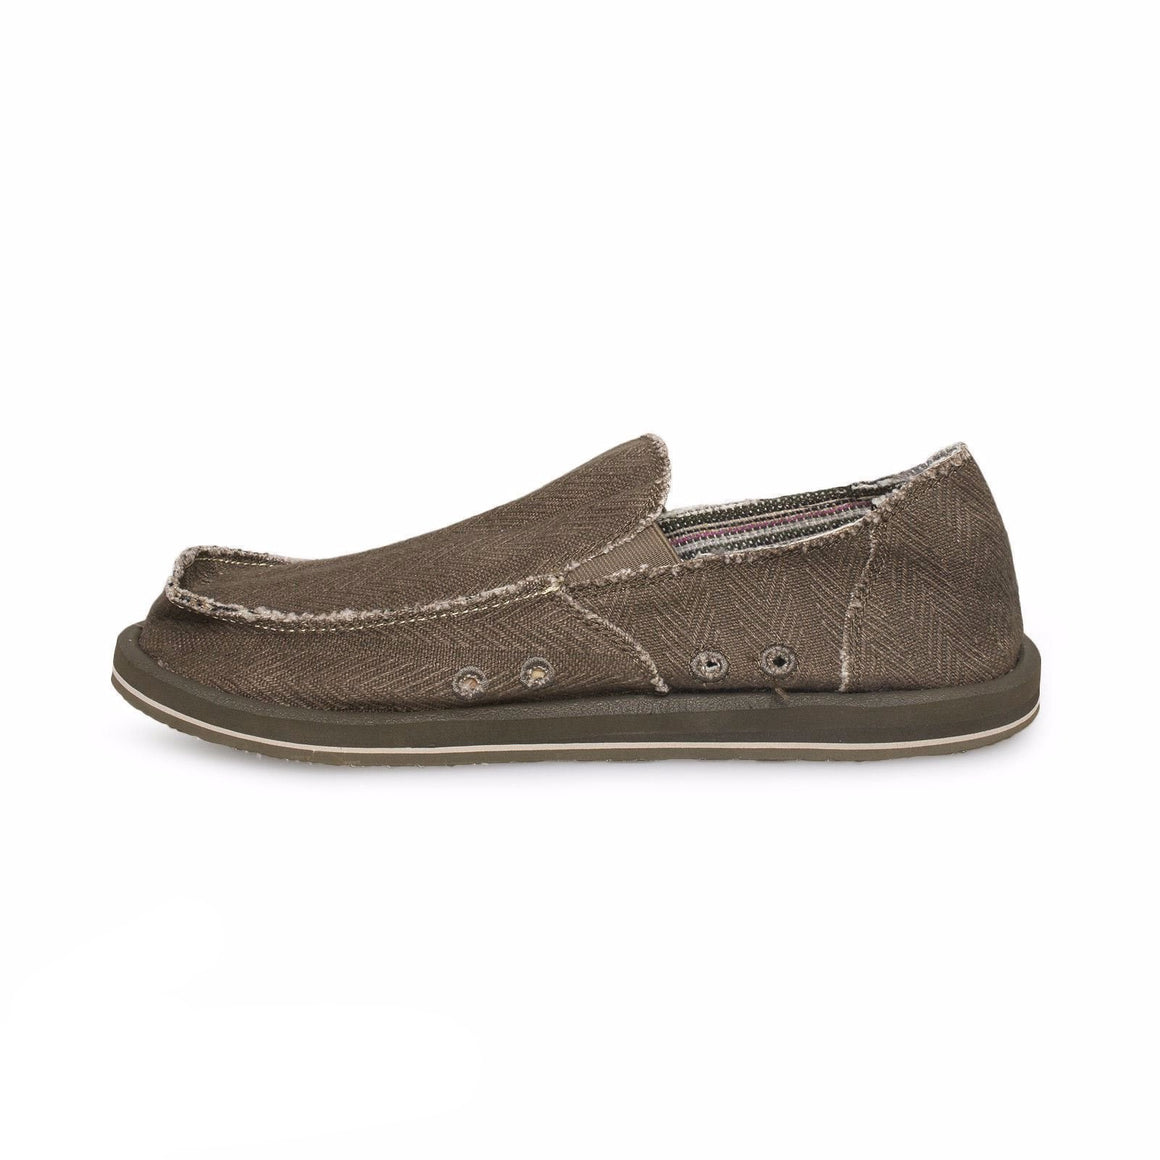 Sanuk Hemp Olive Shoes